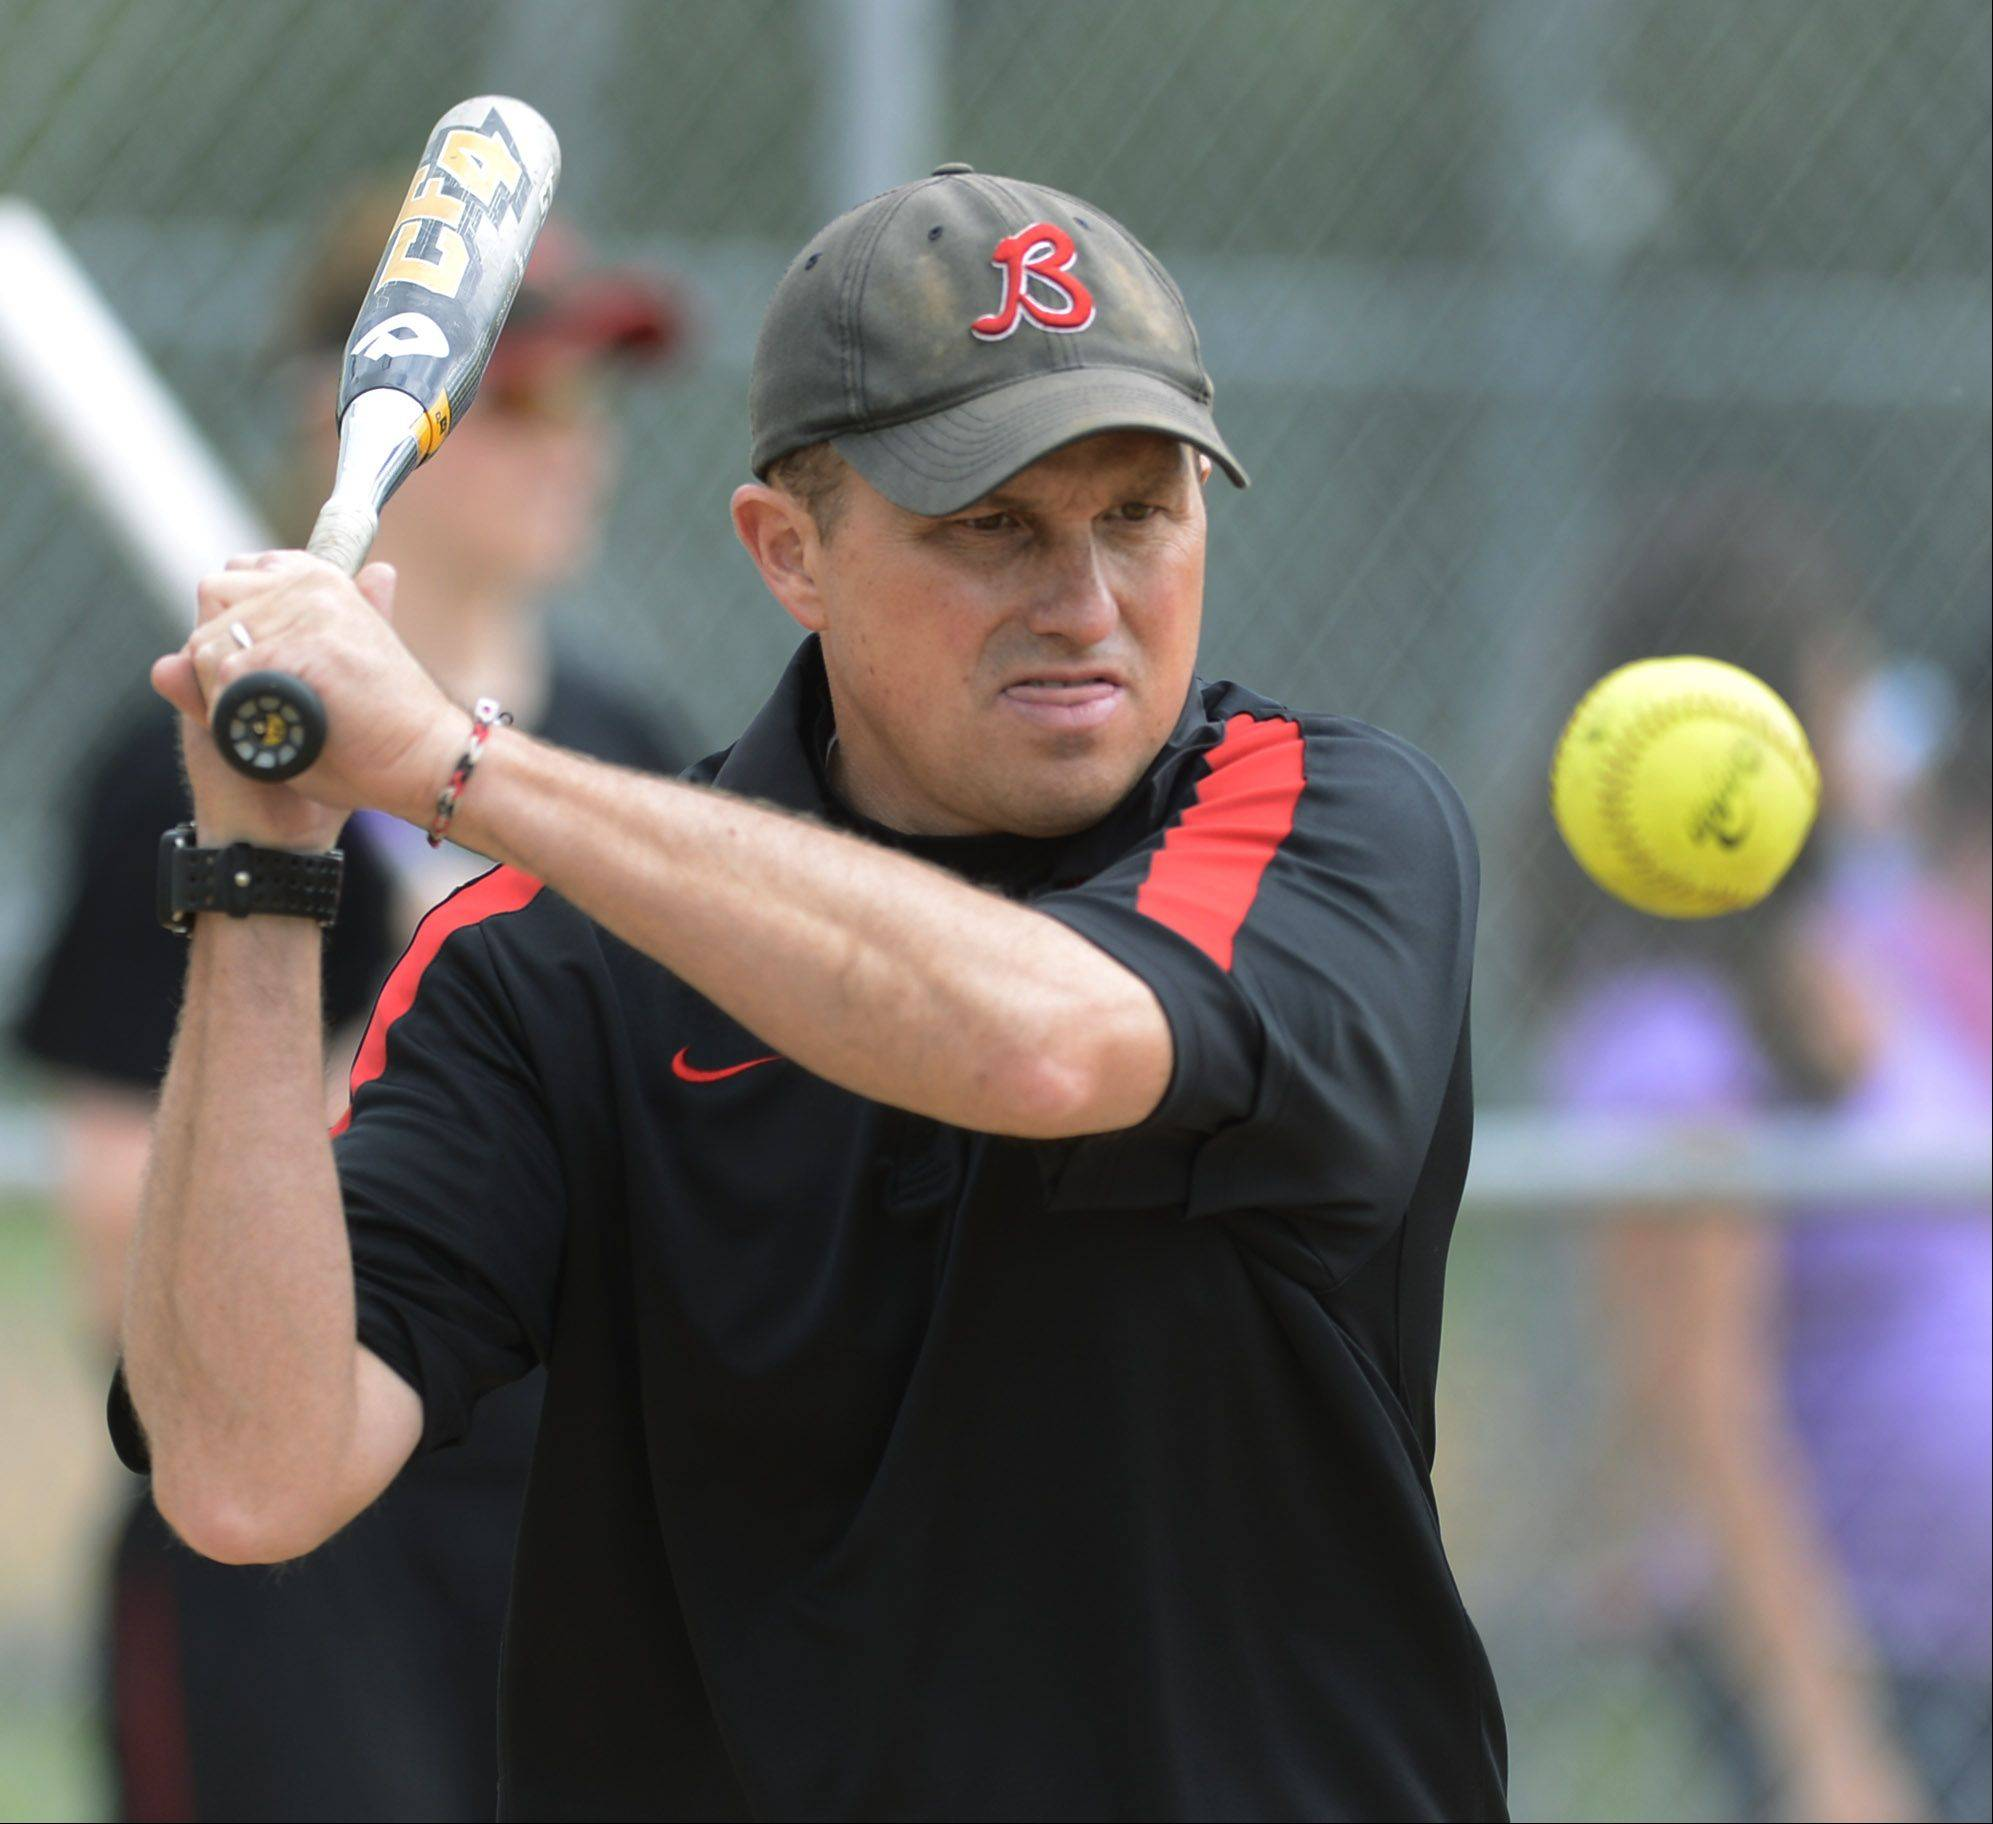 Barrington softball coach Perry Peterson hits groundballs during infield warm-ups before the Fillies' sectional final victory over New Trier.